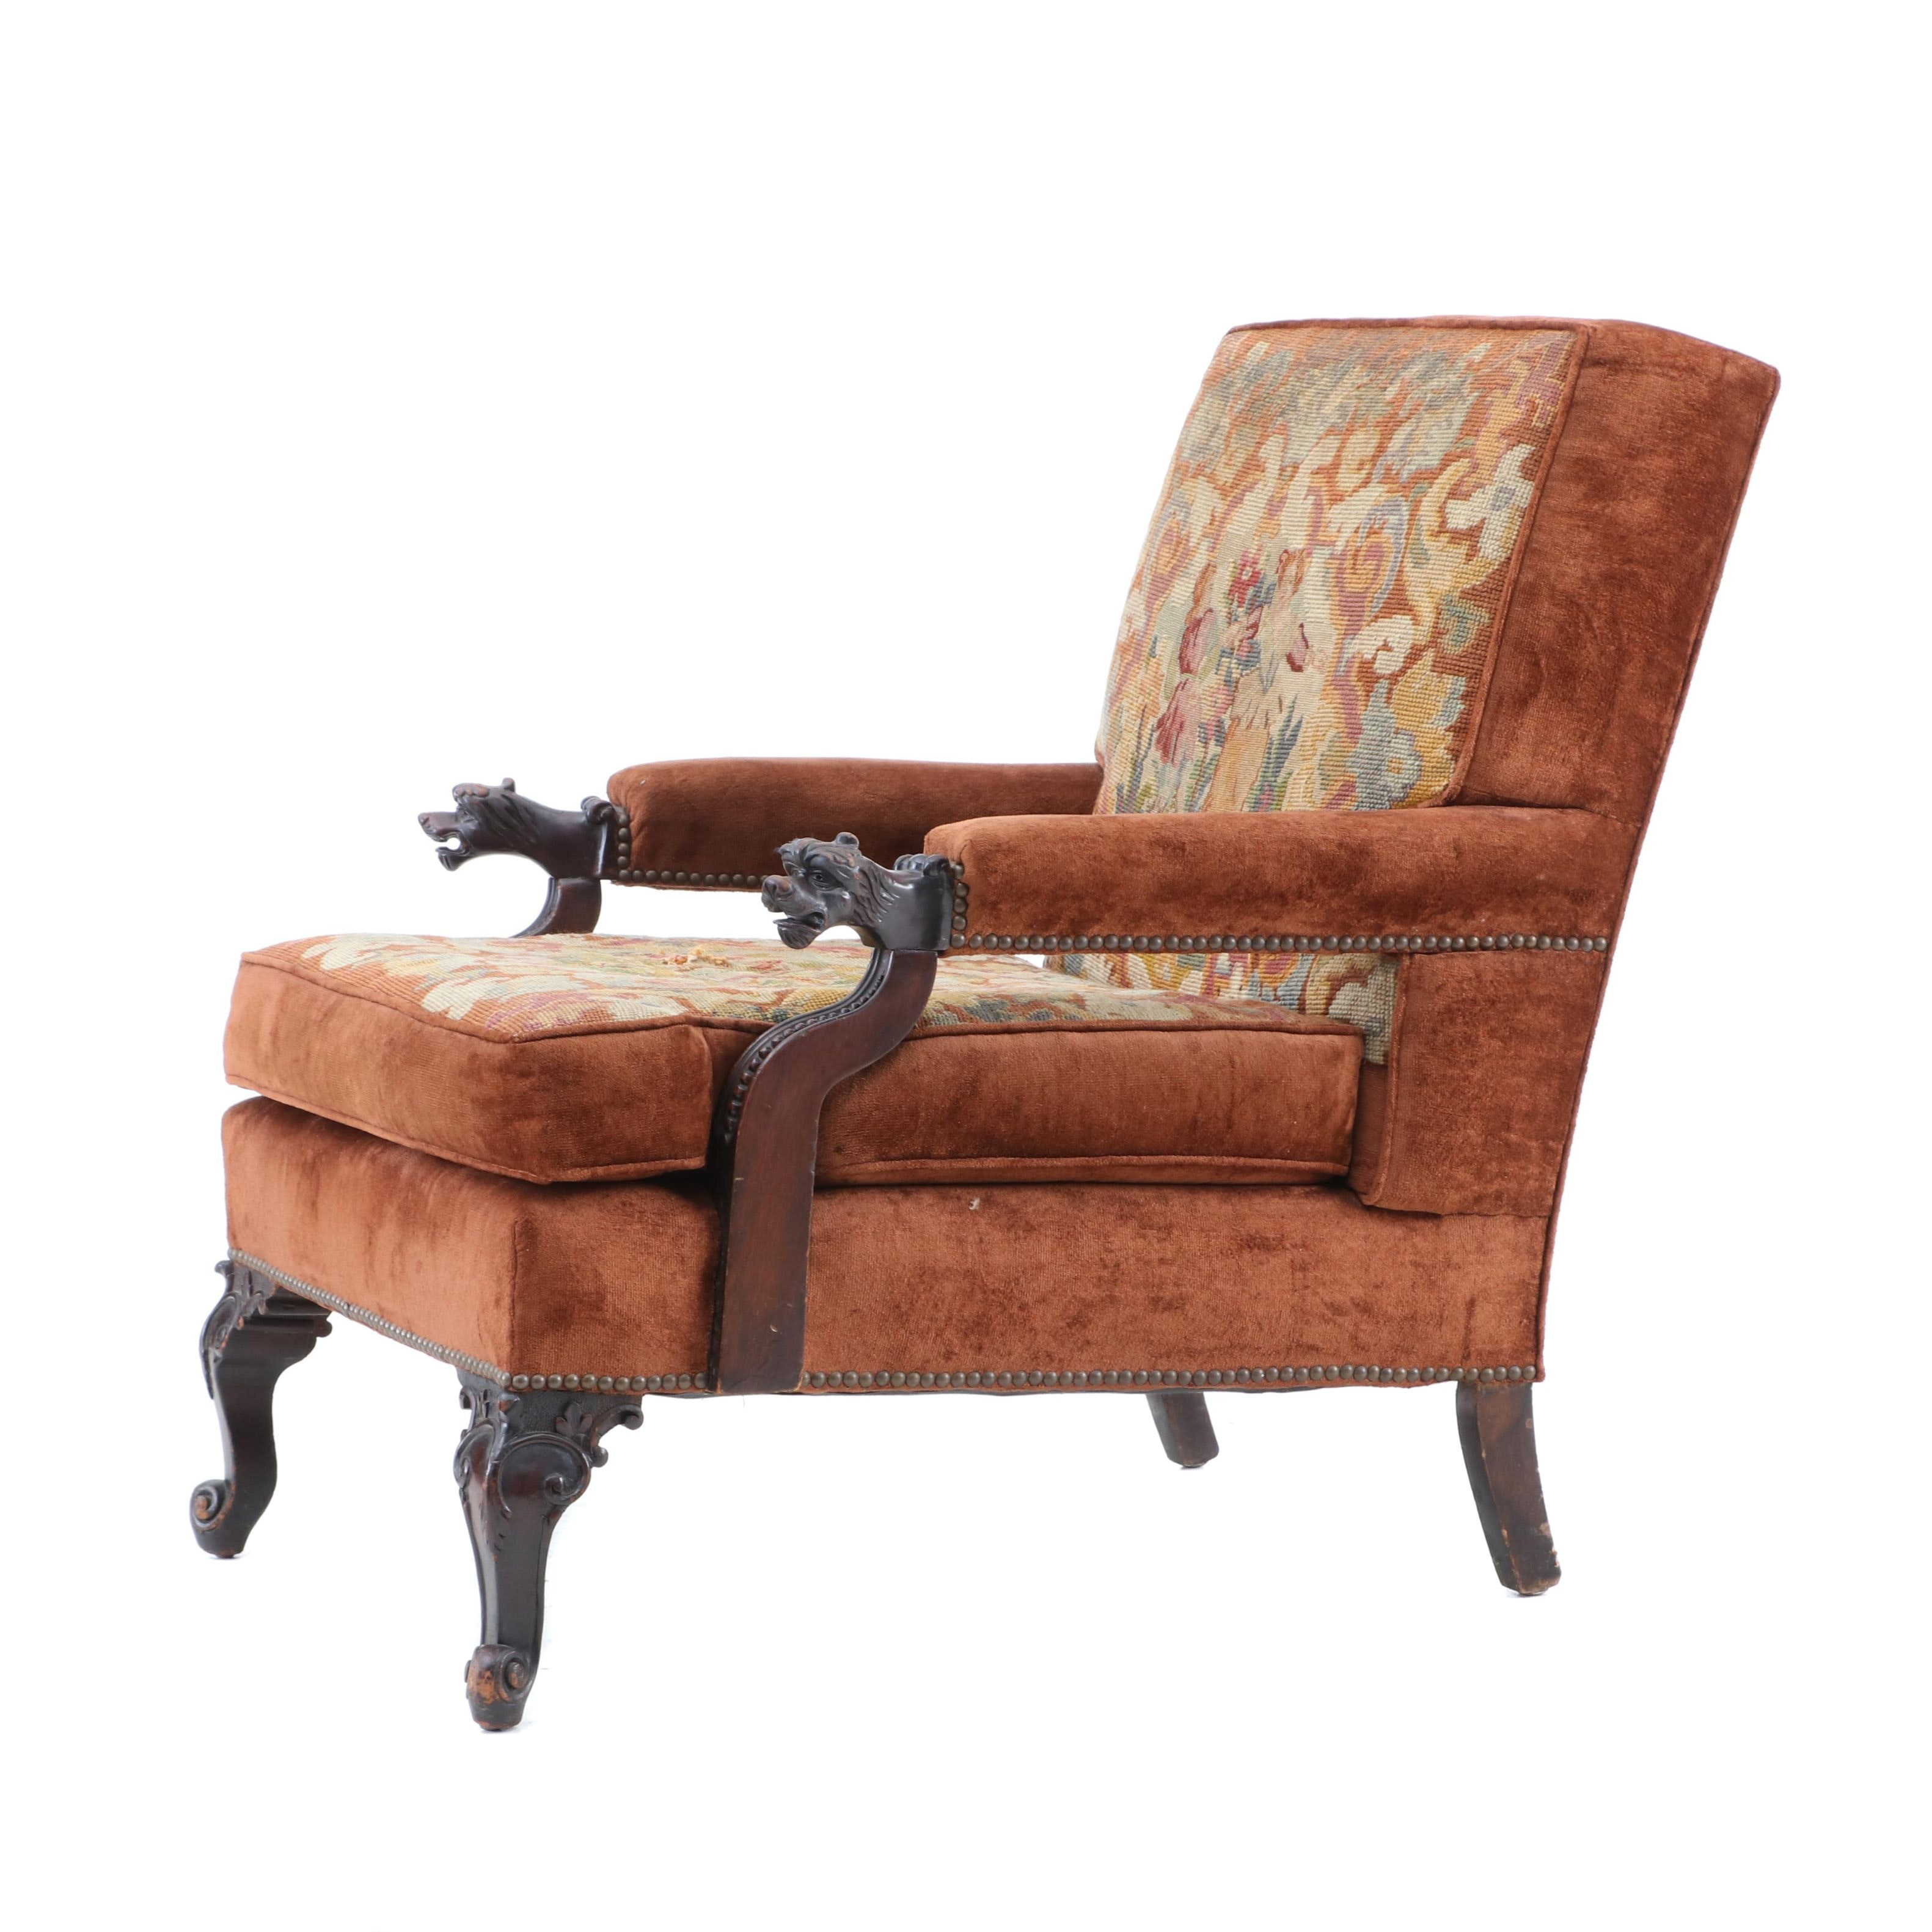 Victorian Mahogany and Upholstered Armchair, Mid-19th Century